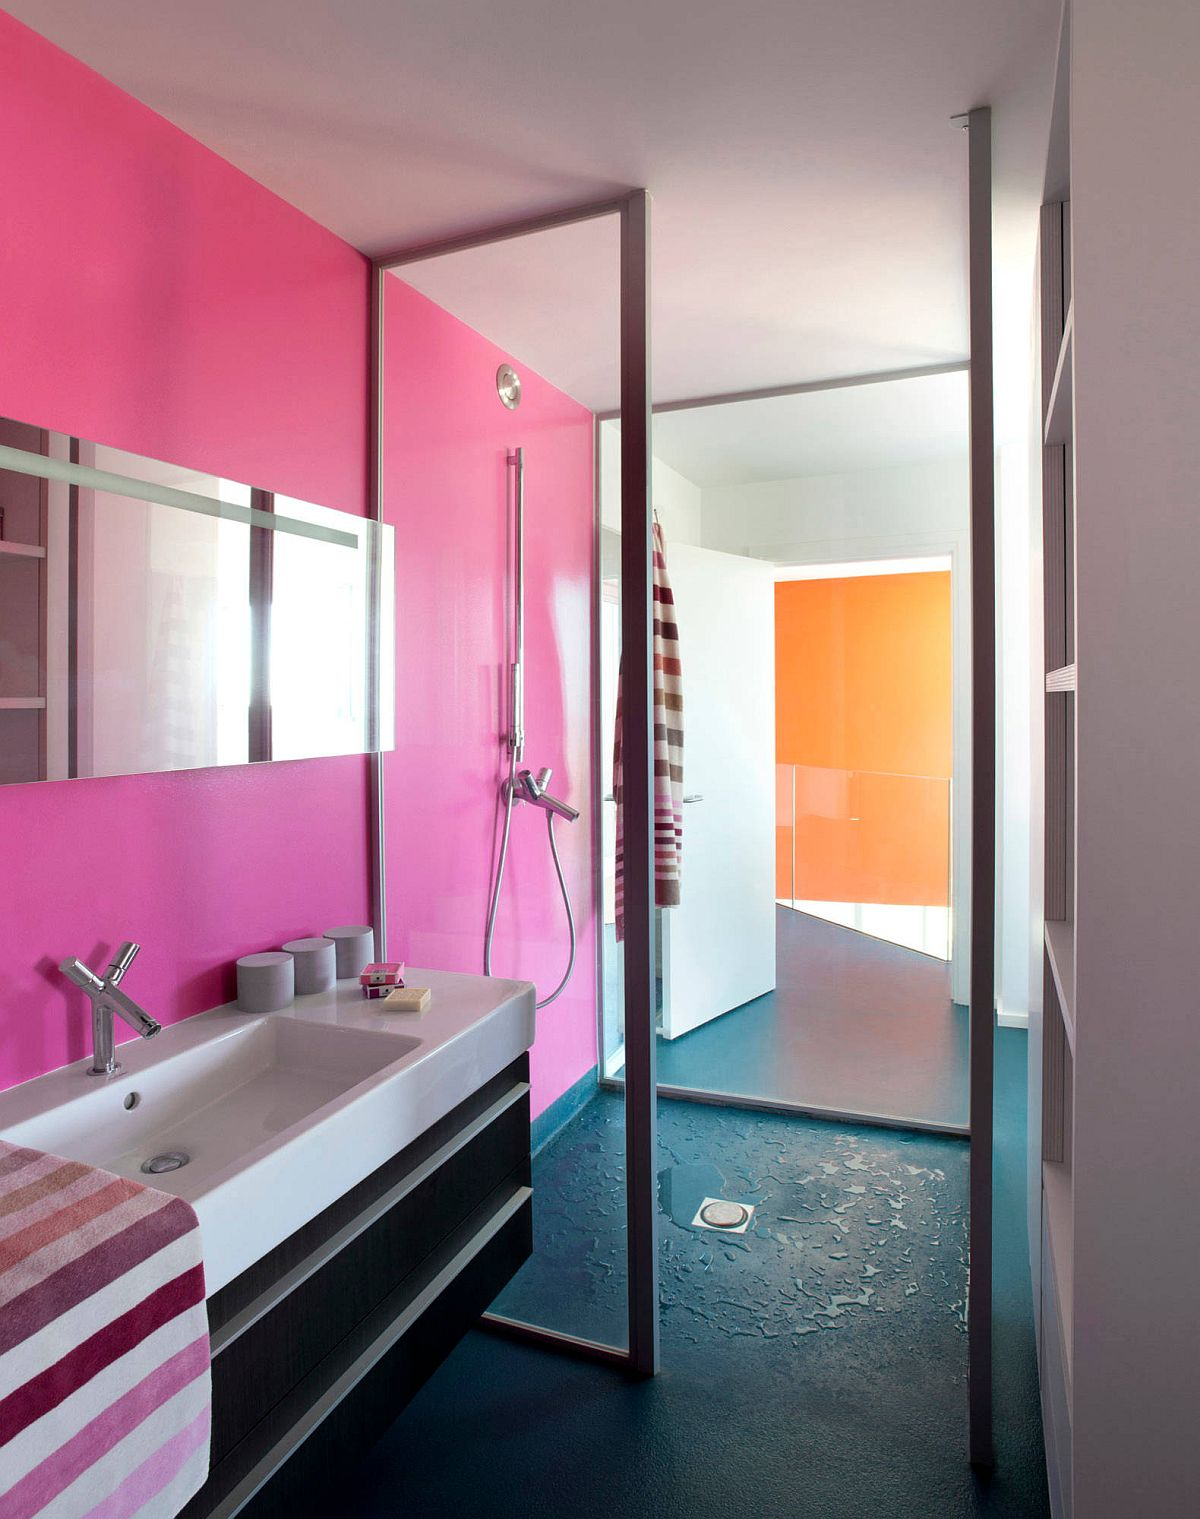 Blue floor combined with pink walls in the contemporary bathroom